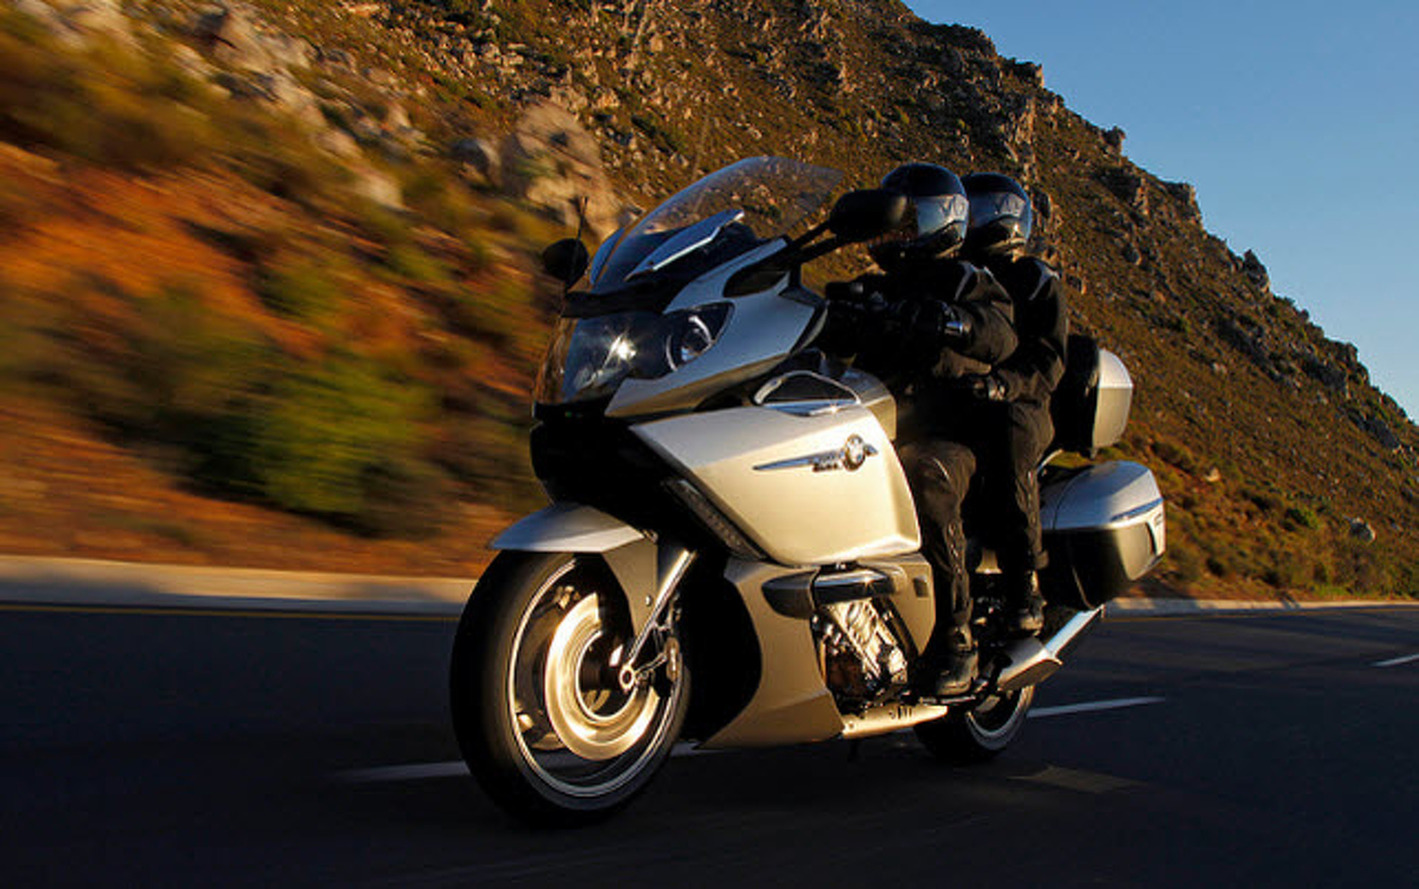 BMW K1600GTL: The Ultimate Long-Distance Riding Machine